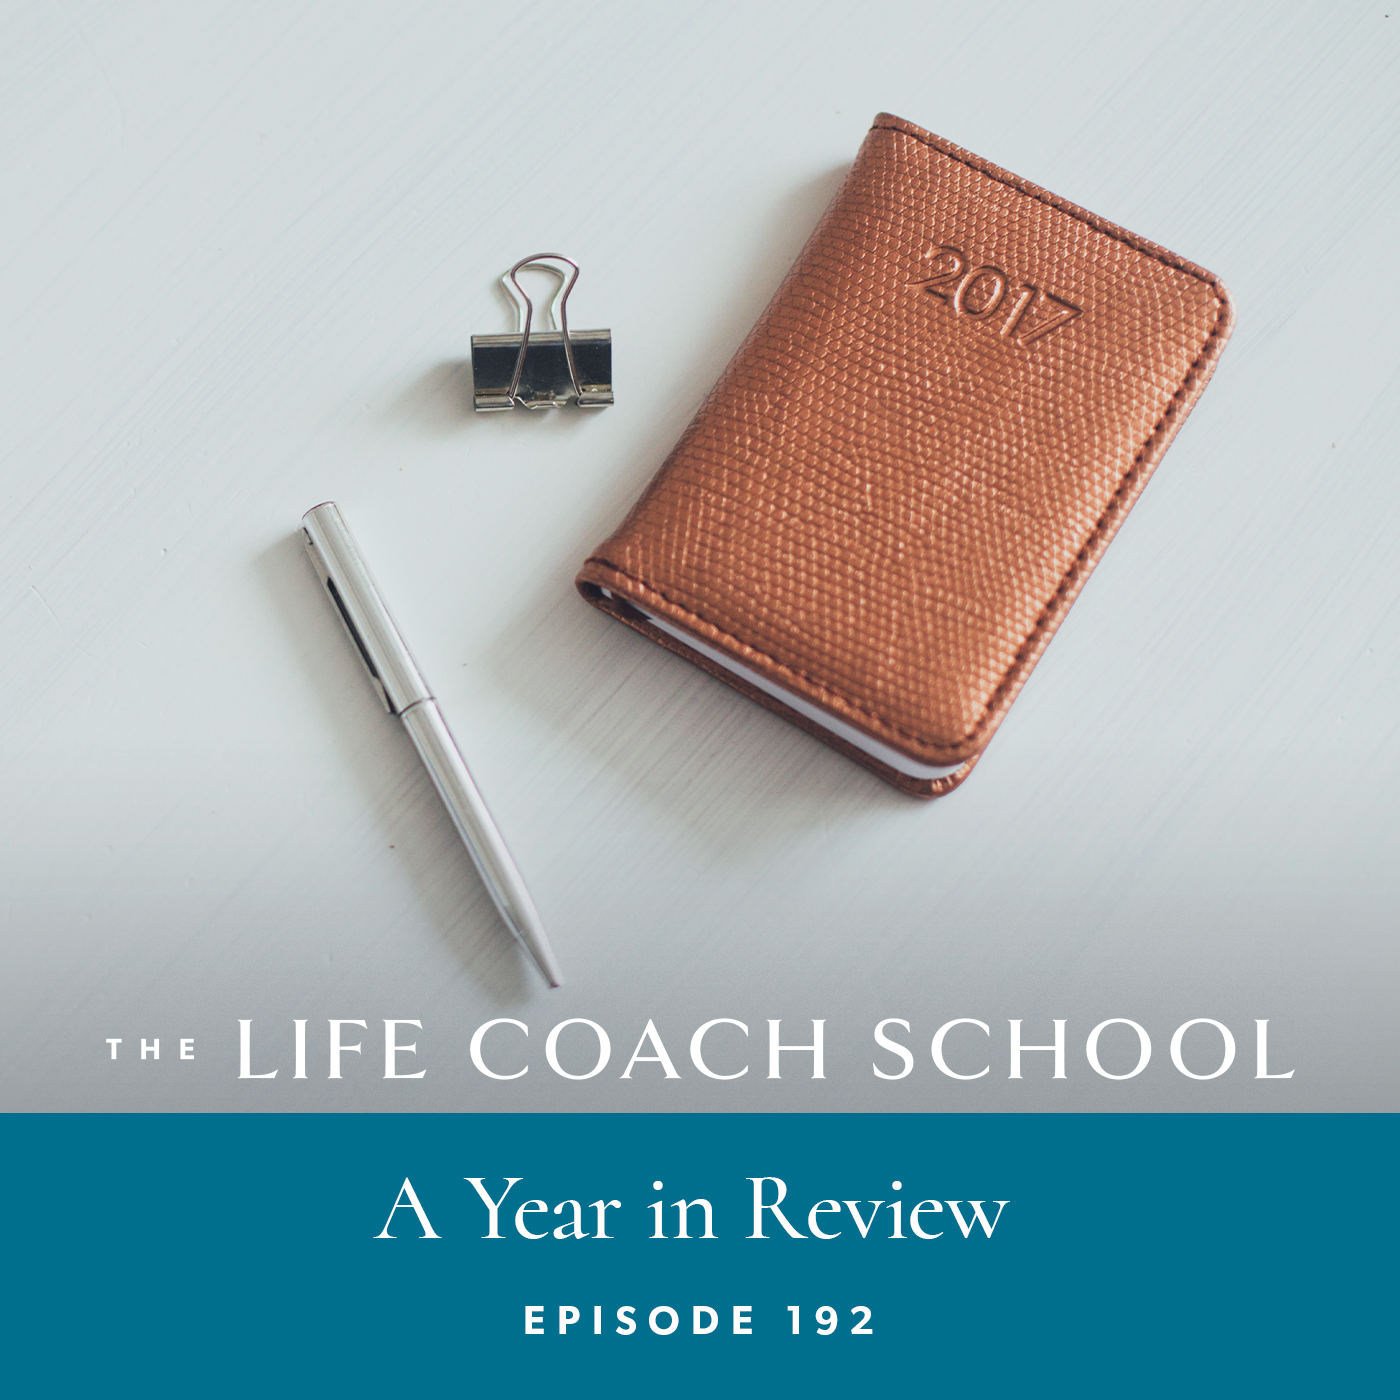 The Life Coach School Podcast with Brooke Castillo | Episode 192 | A Year in Review